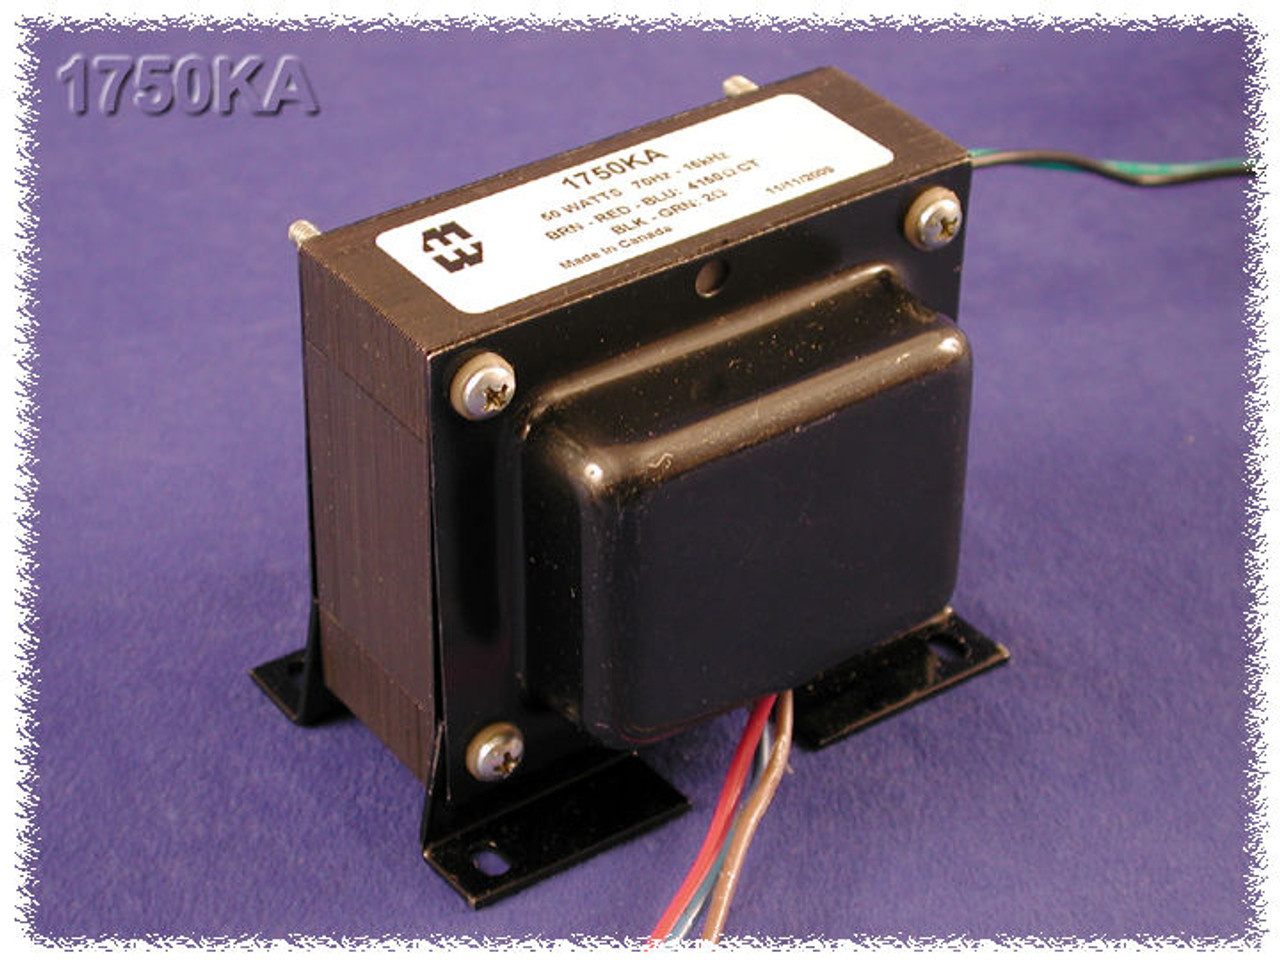 Hammond 1750KA - Output Transformer